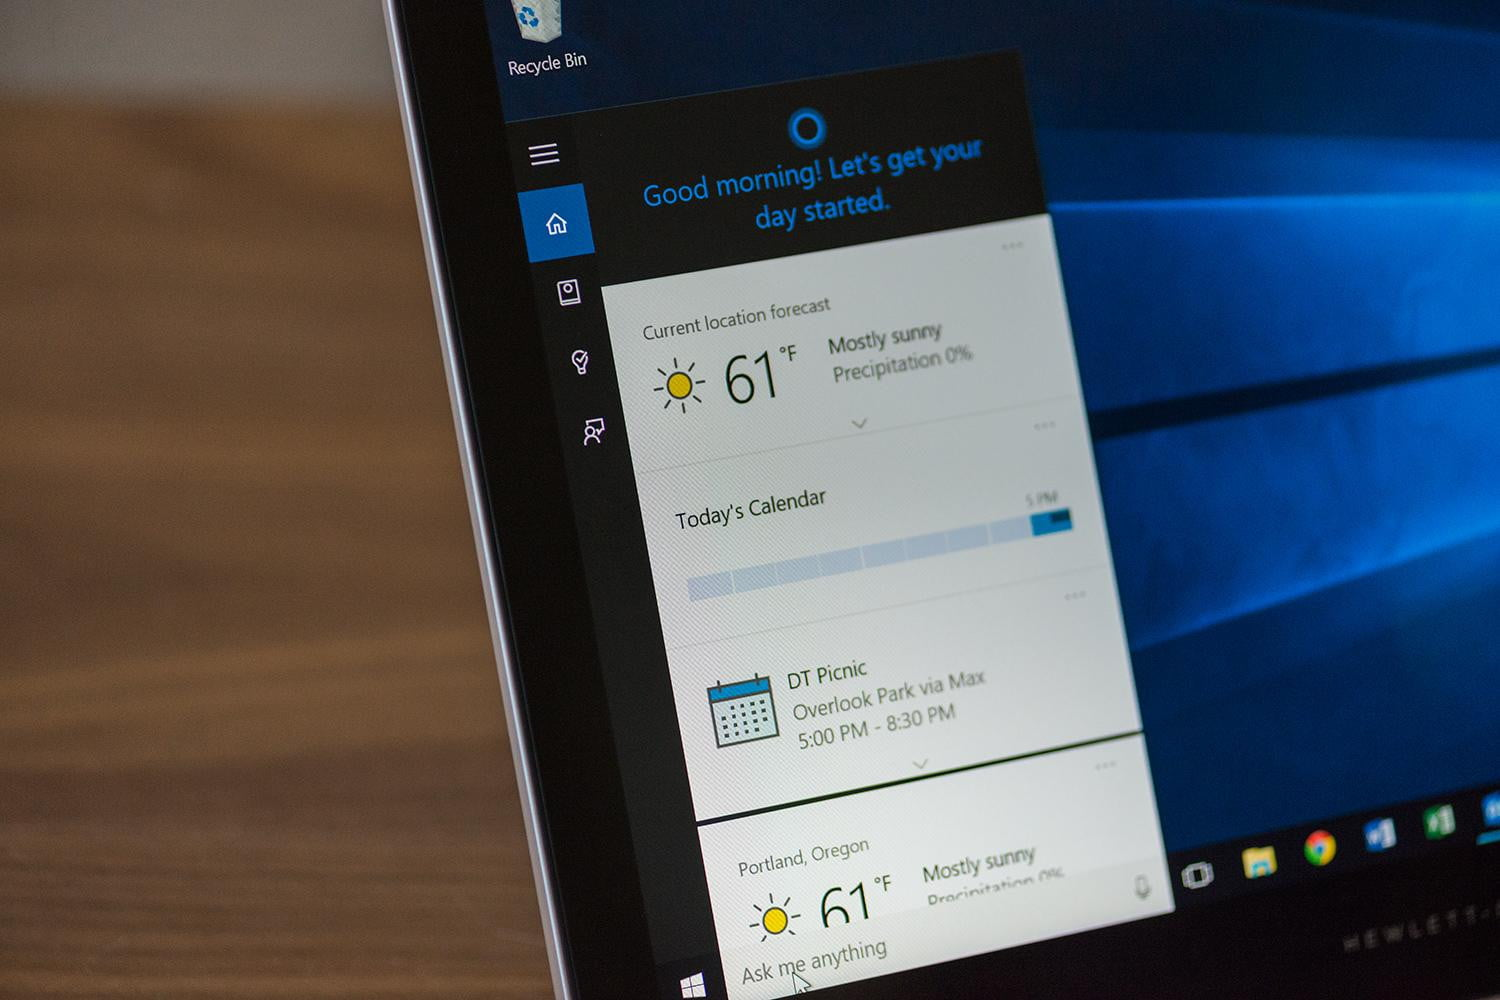 windows-10-cortana-weather-1500x1000.jpg